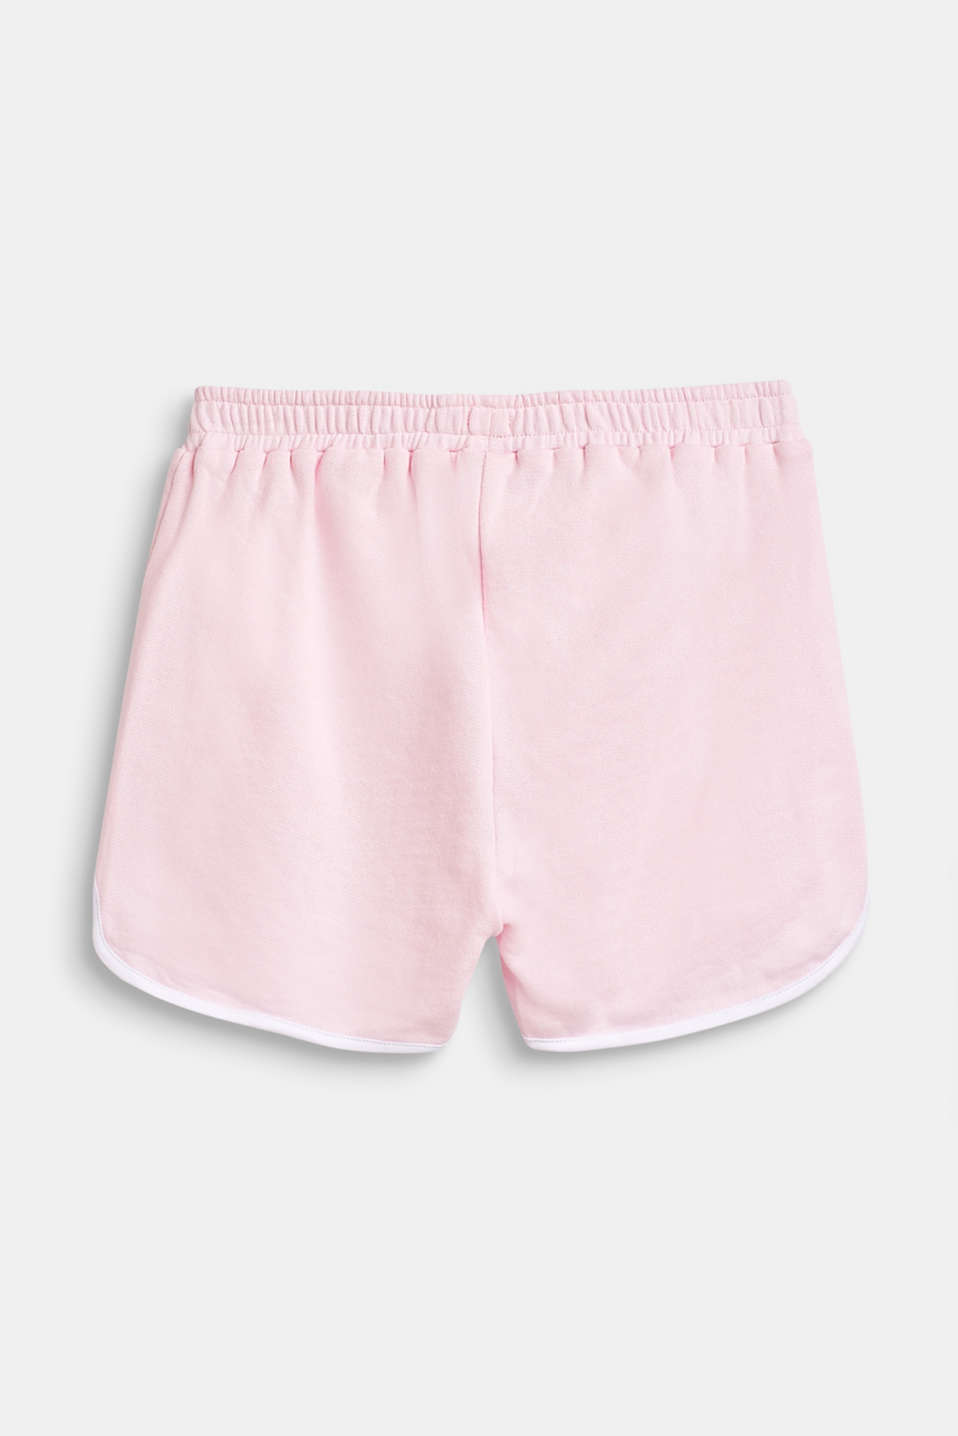 Sweatshirt shorts with piping, 100% cotton, LCBLUSH, detail image number 1